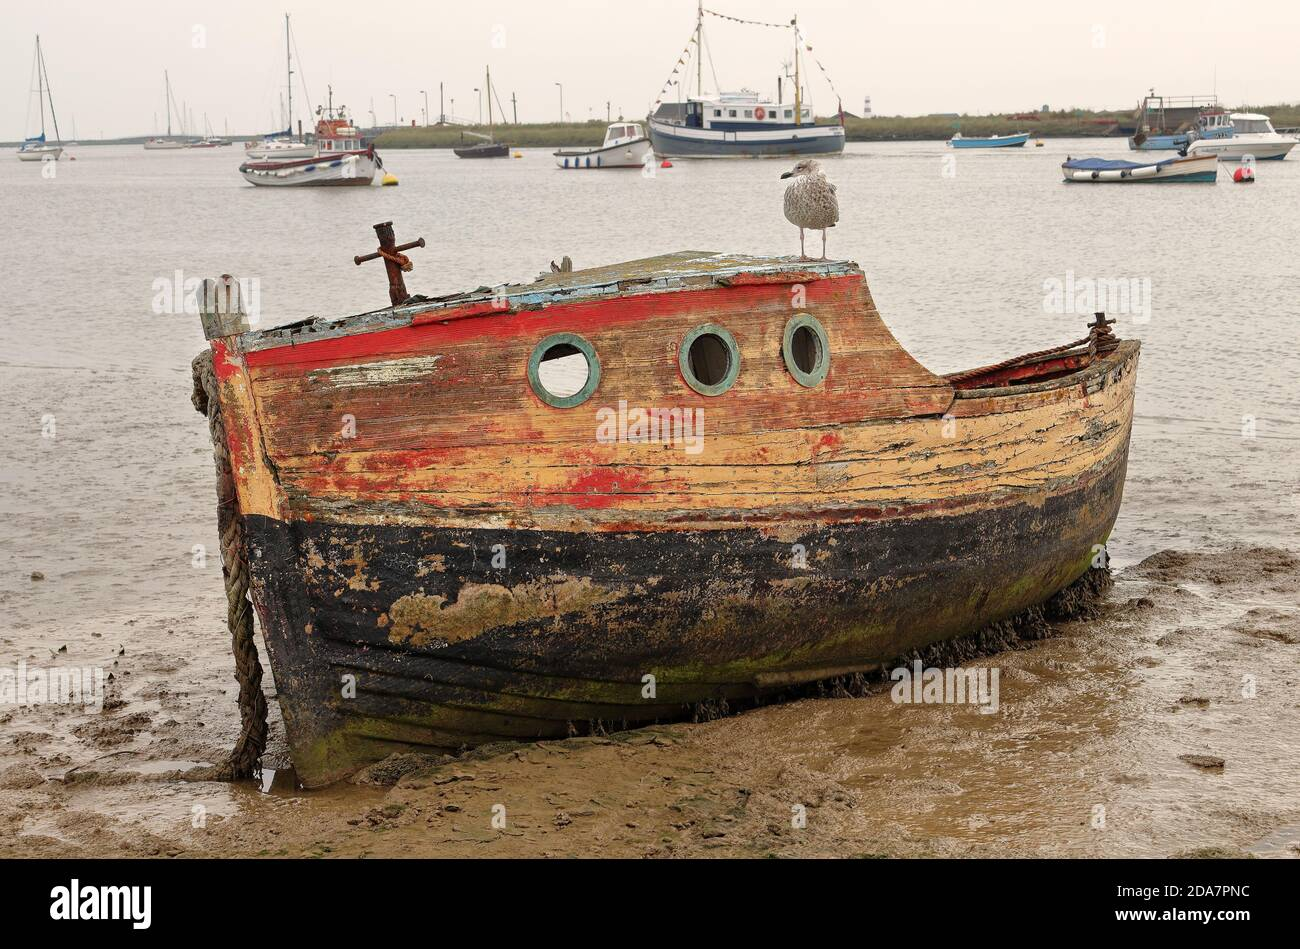 Boat wreck on a tidal estuary in Suffolk, UK, with seabird perched on the roof Stock Photo